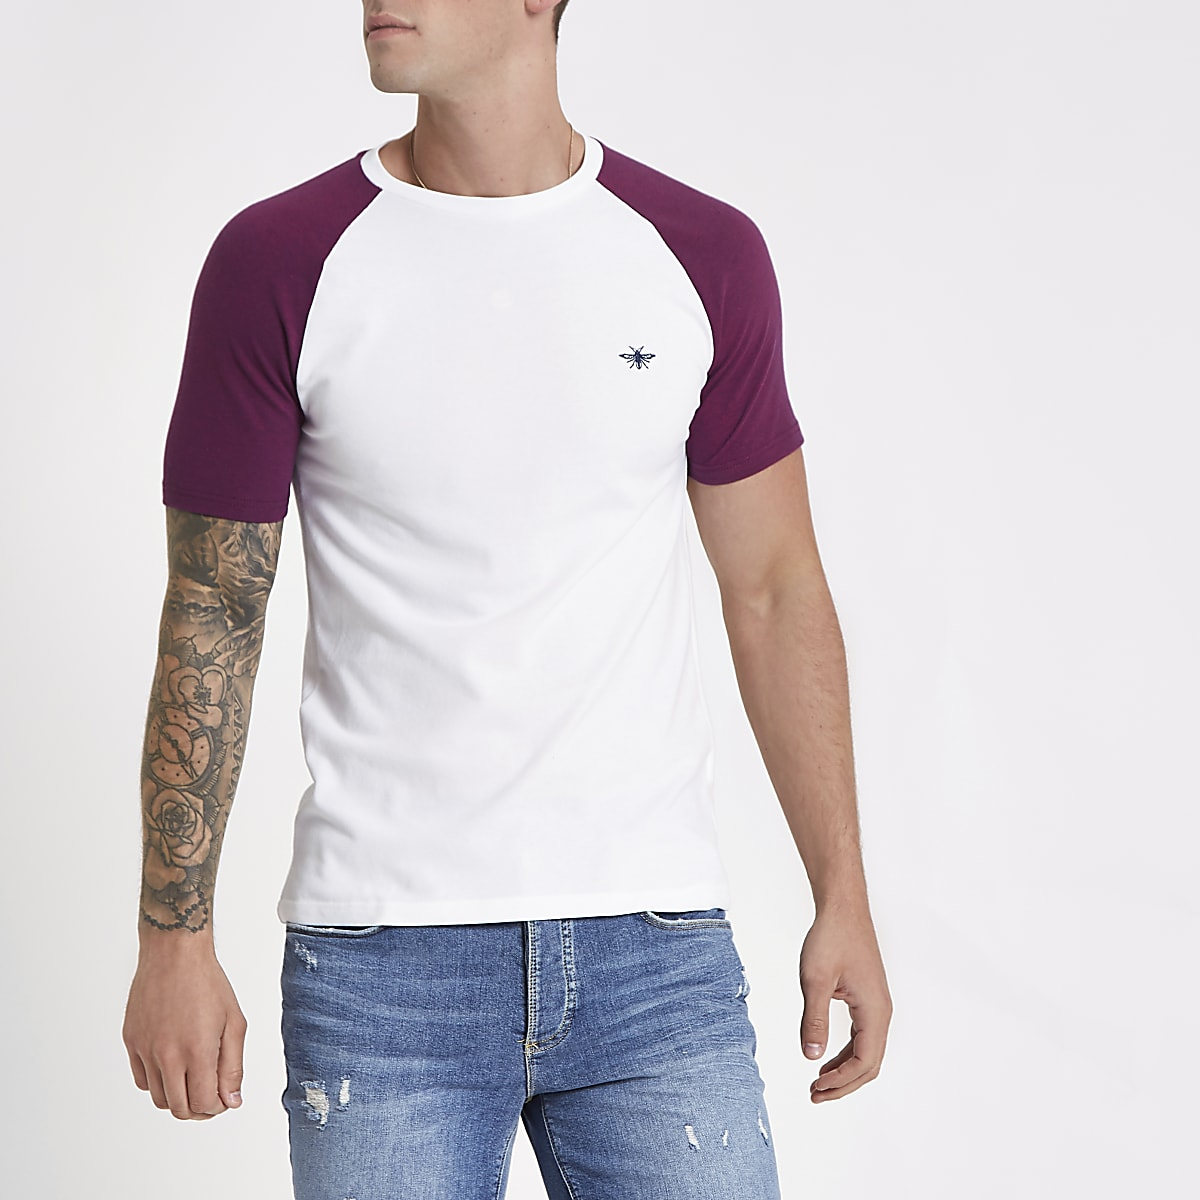 076d9a942 White and red pique muscle fit raglan T-shirt - T-shirts - T-Shirts   Vests  - men